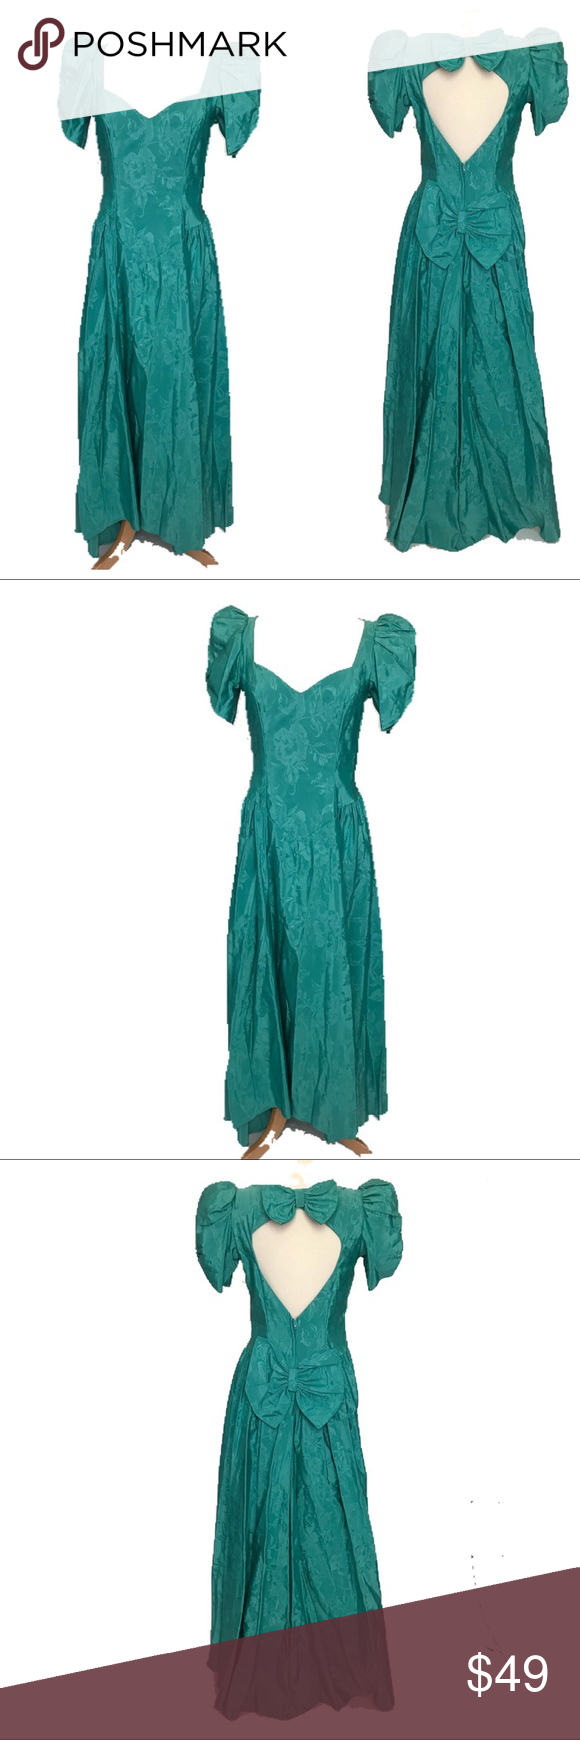 Vintage s prom dress size green puffy vintage s prom dress